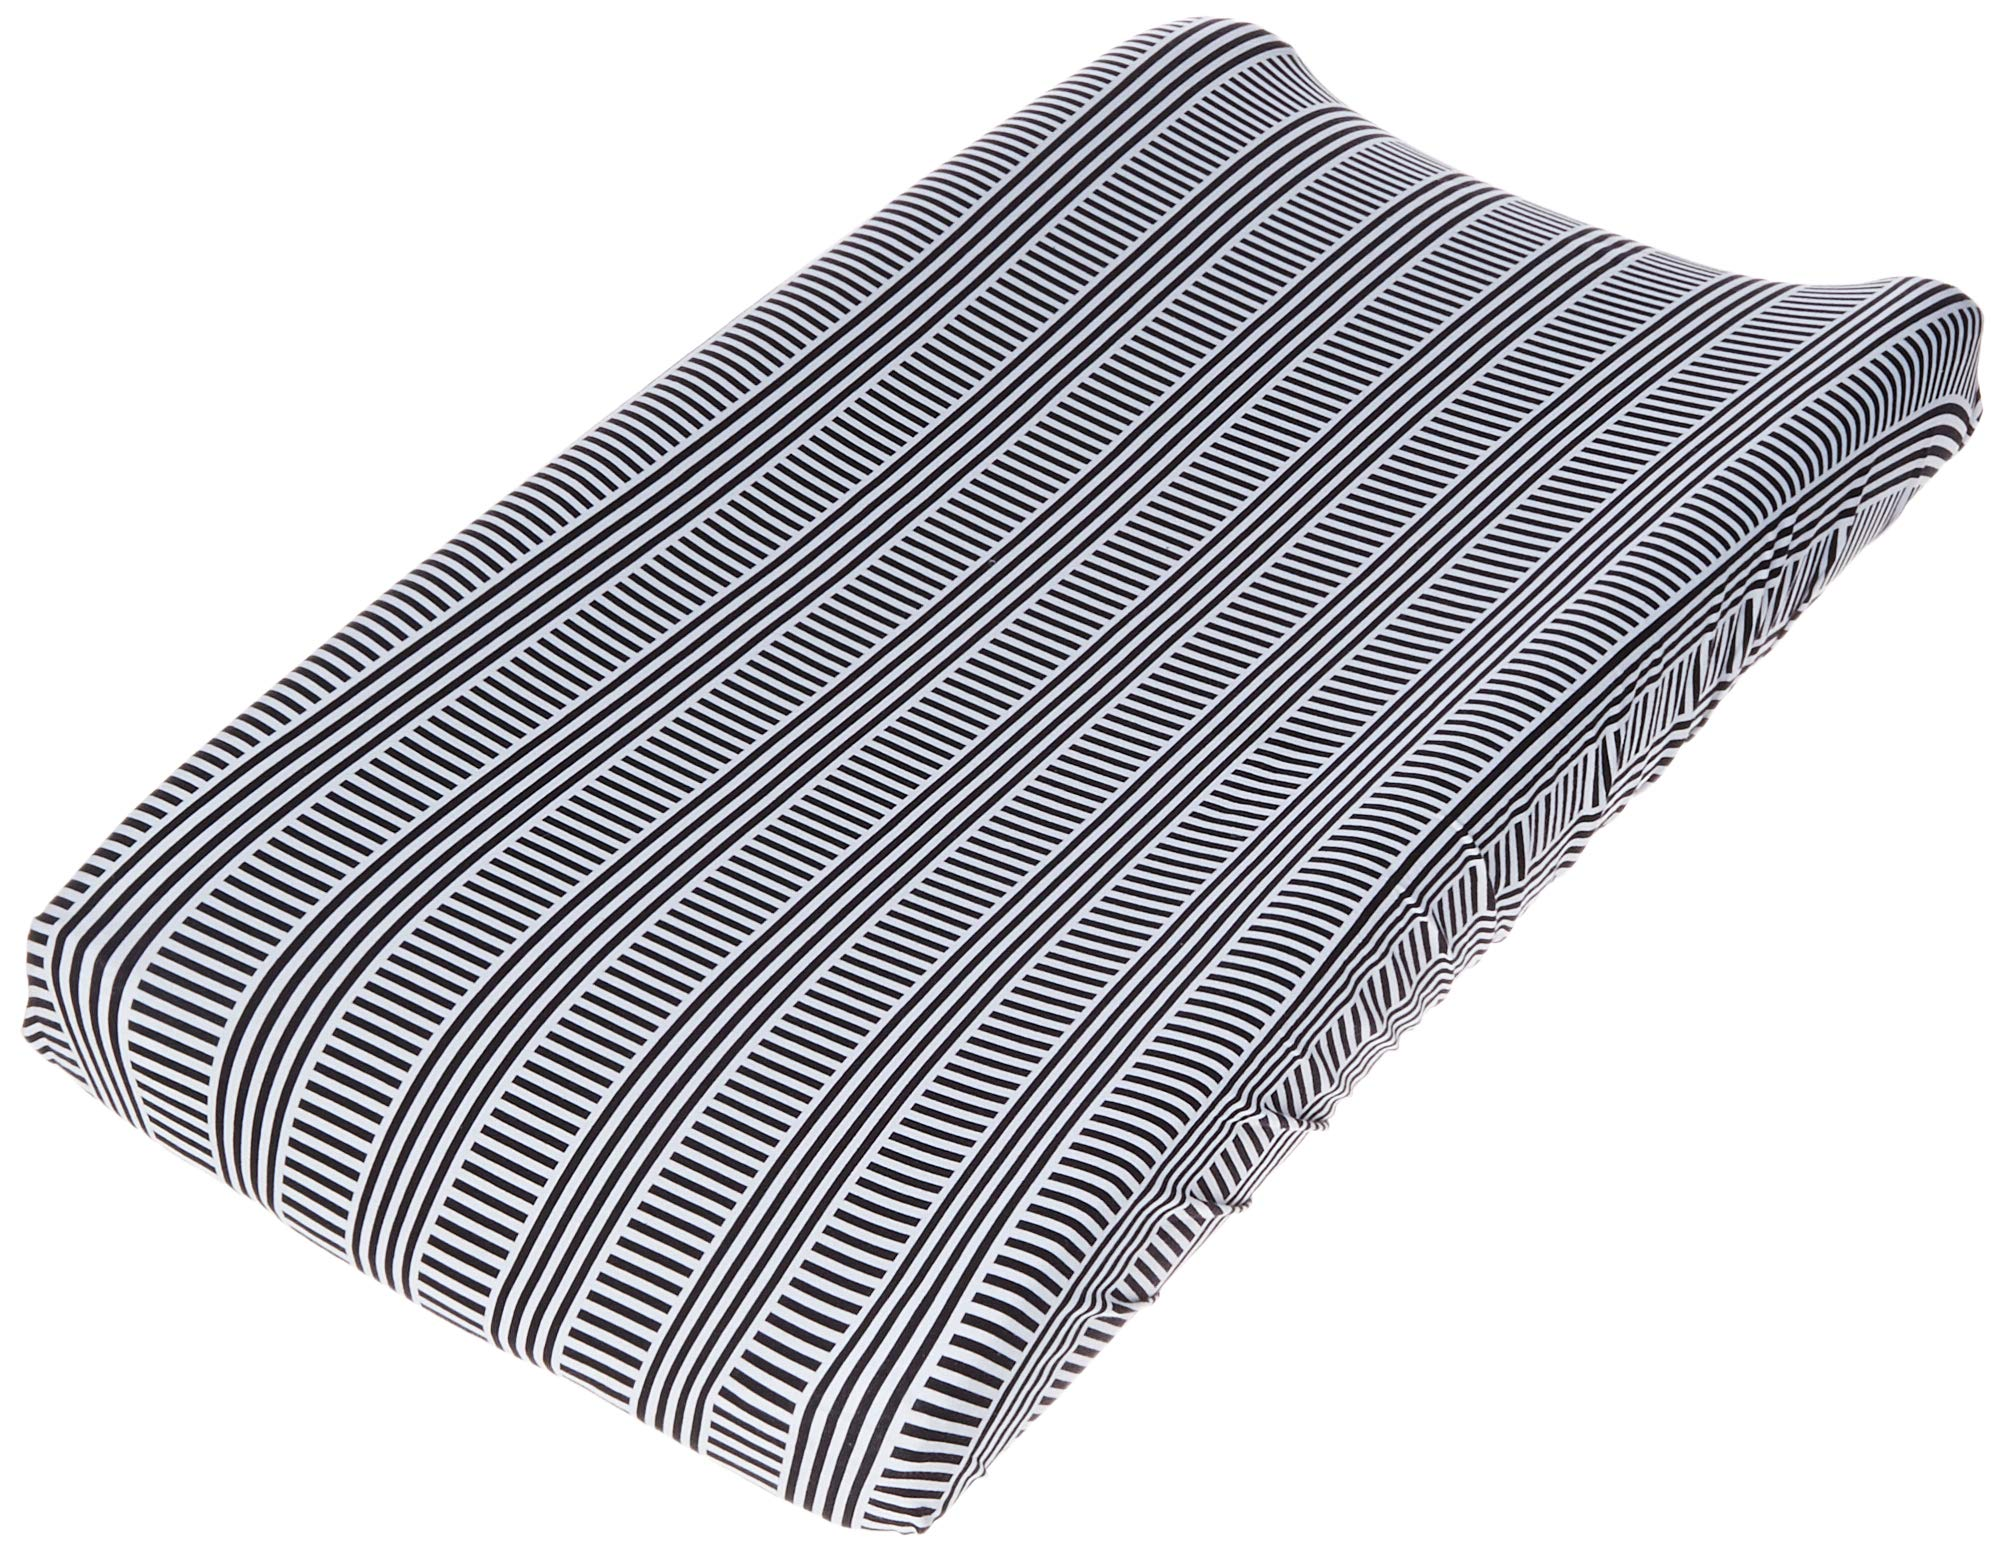 Oilo Black & White Changing Pad Cover by Oilo